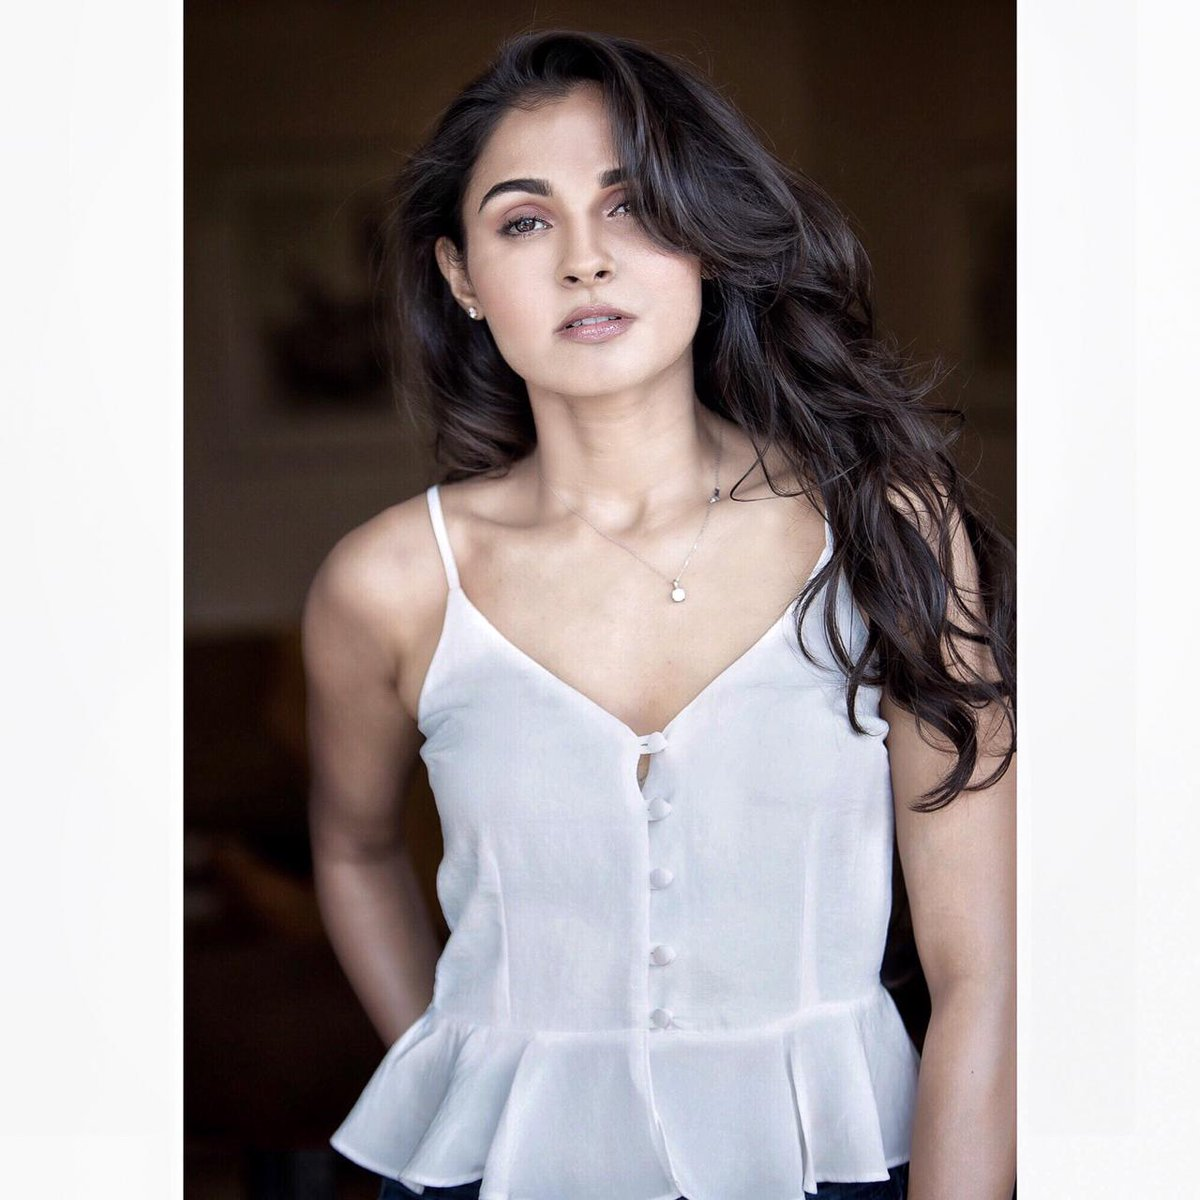 Actress #AndreaJeremiah looks stunning in these pictures from her recent photoshoot!   @andrea_jeremiah @proyuvraaj @UVCommunication